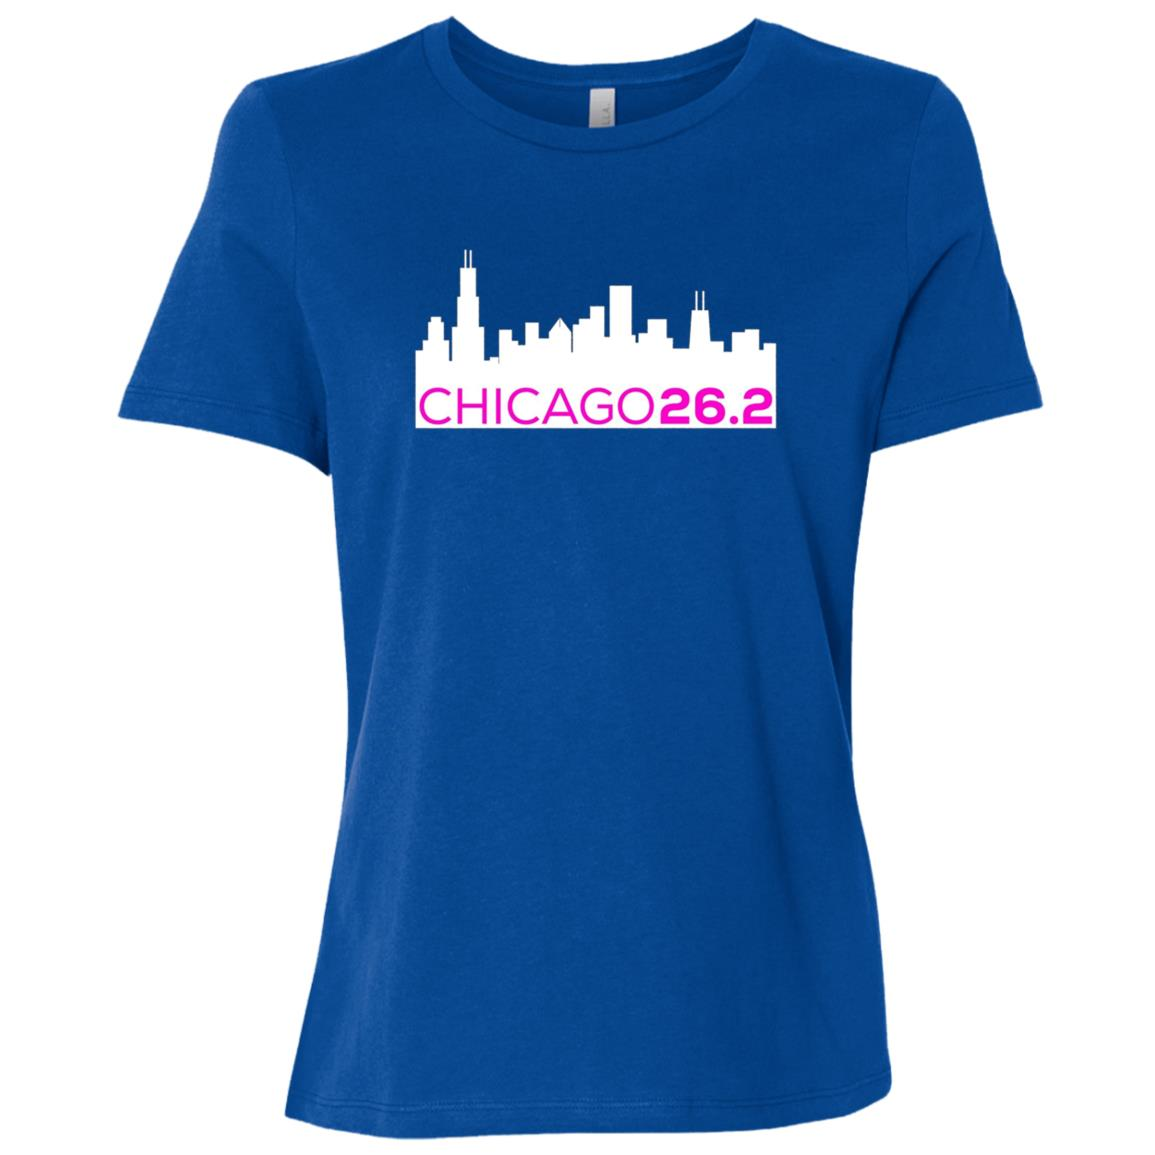 Chicago 26.2 Marathon for Marathoners – PINK Women Short Sleeve T-Shirt